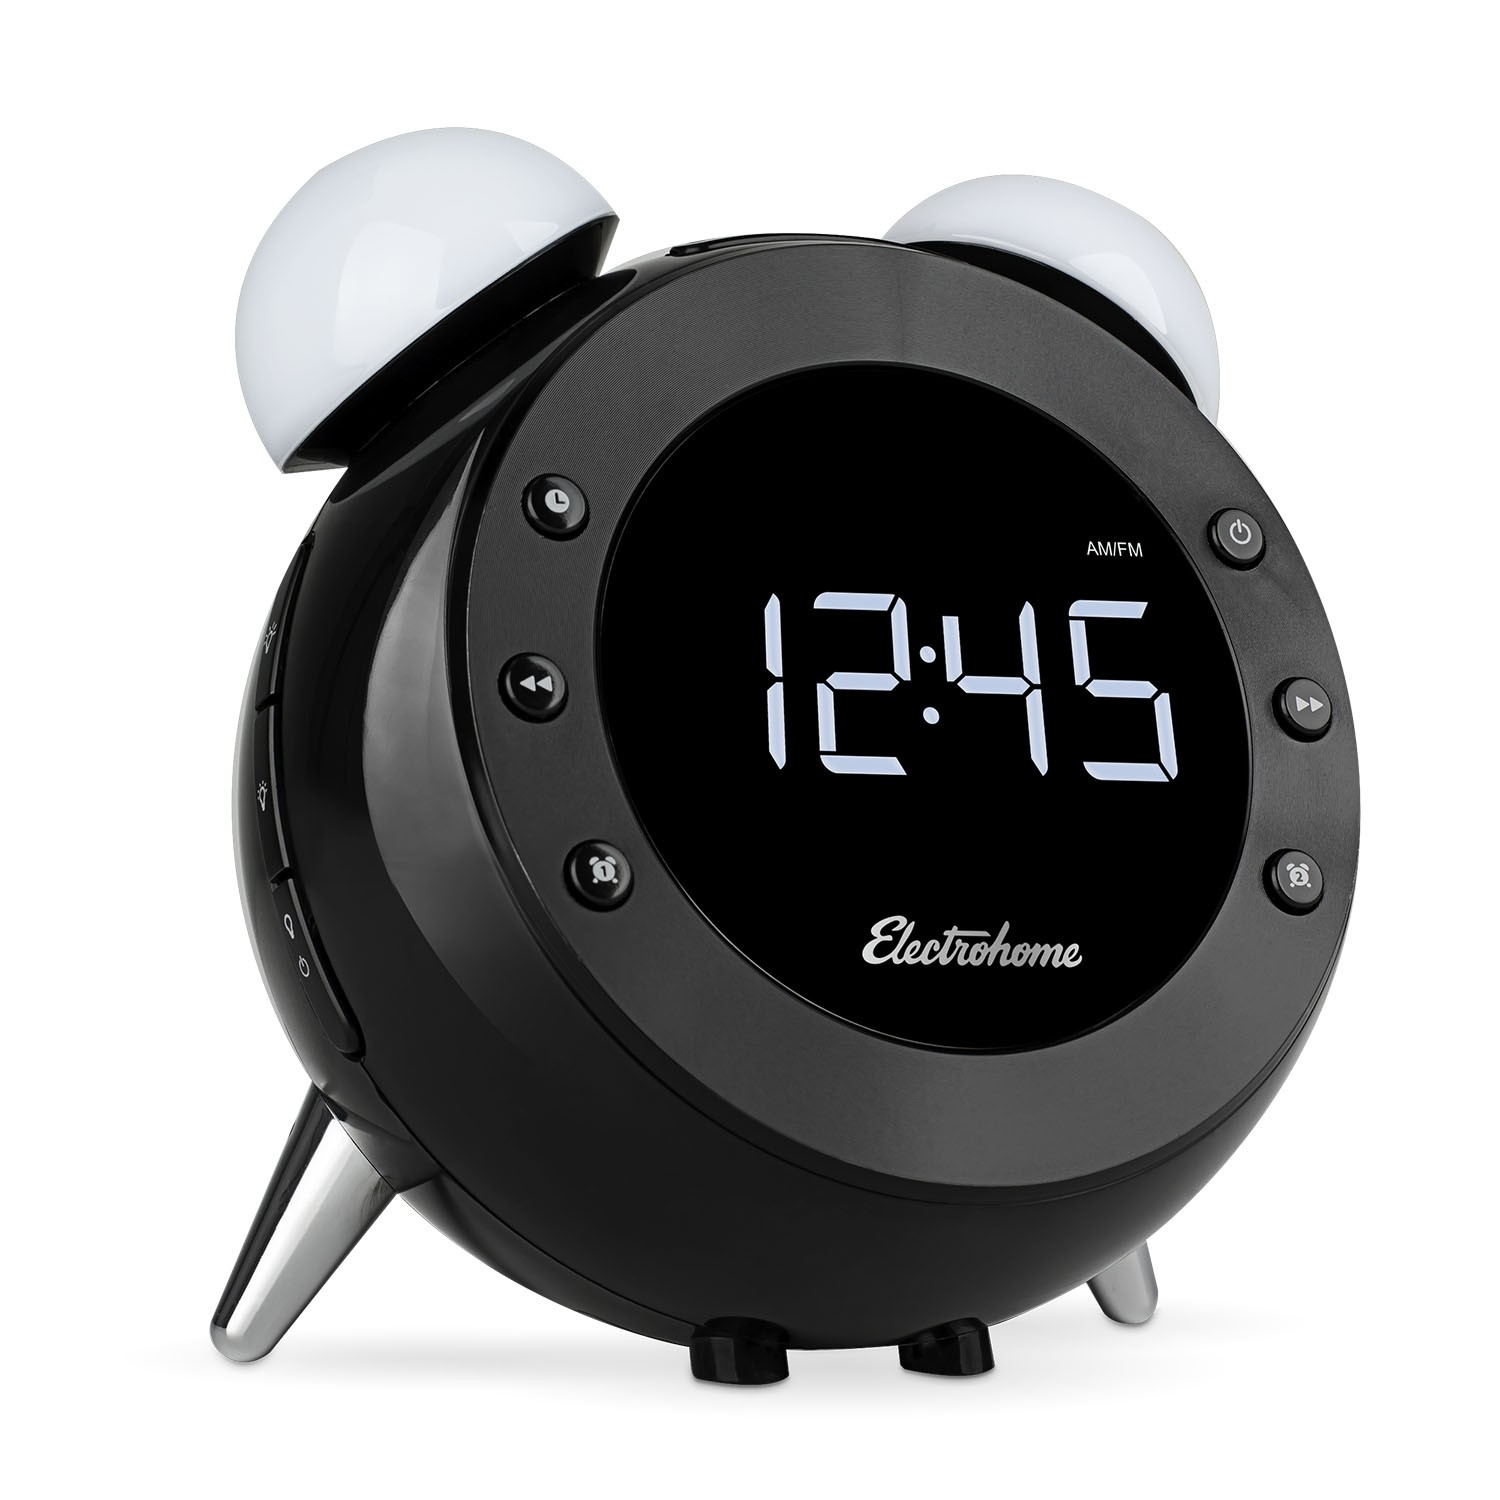 Retro Alarm Clock Radio With Motion Activated Night Light And Snooze Lamp Electrohome